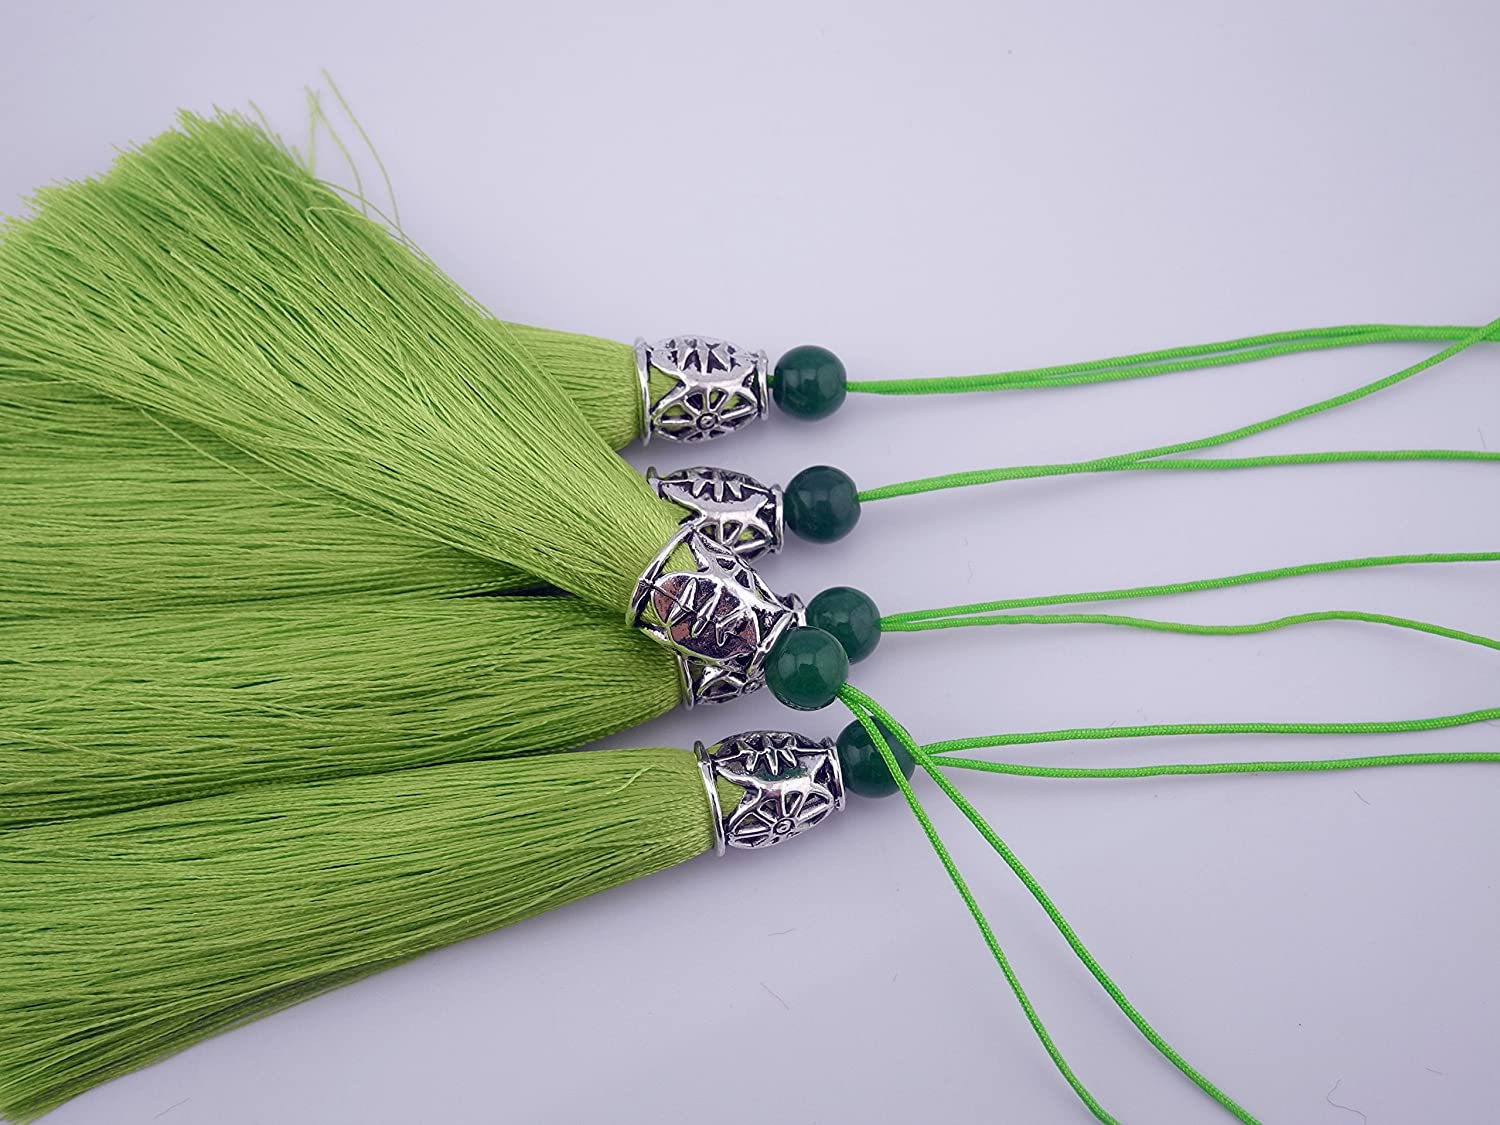 10pcs 3.6\'\'(9.0cm) Soft Silk Tassels for Jewelry with Hollowed Antique Silver Cap and Jade Beads (Lavender) Sansam